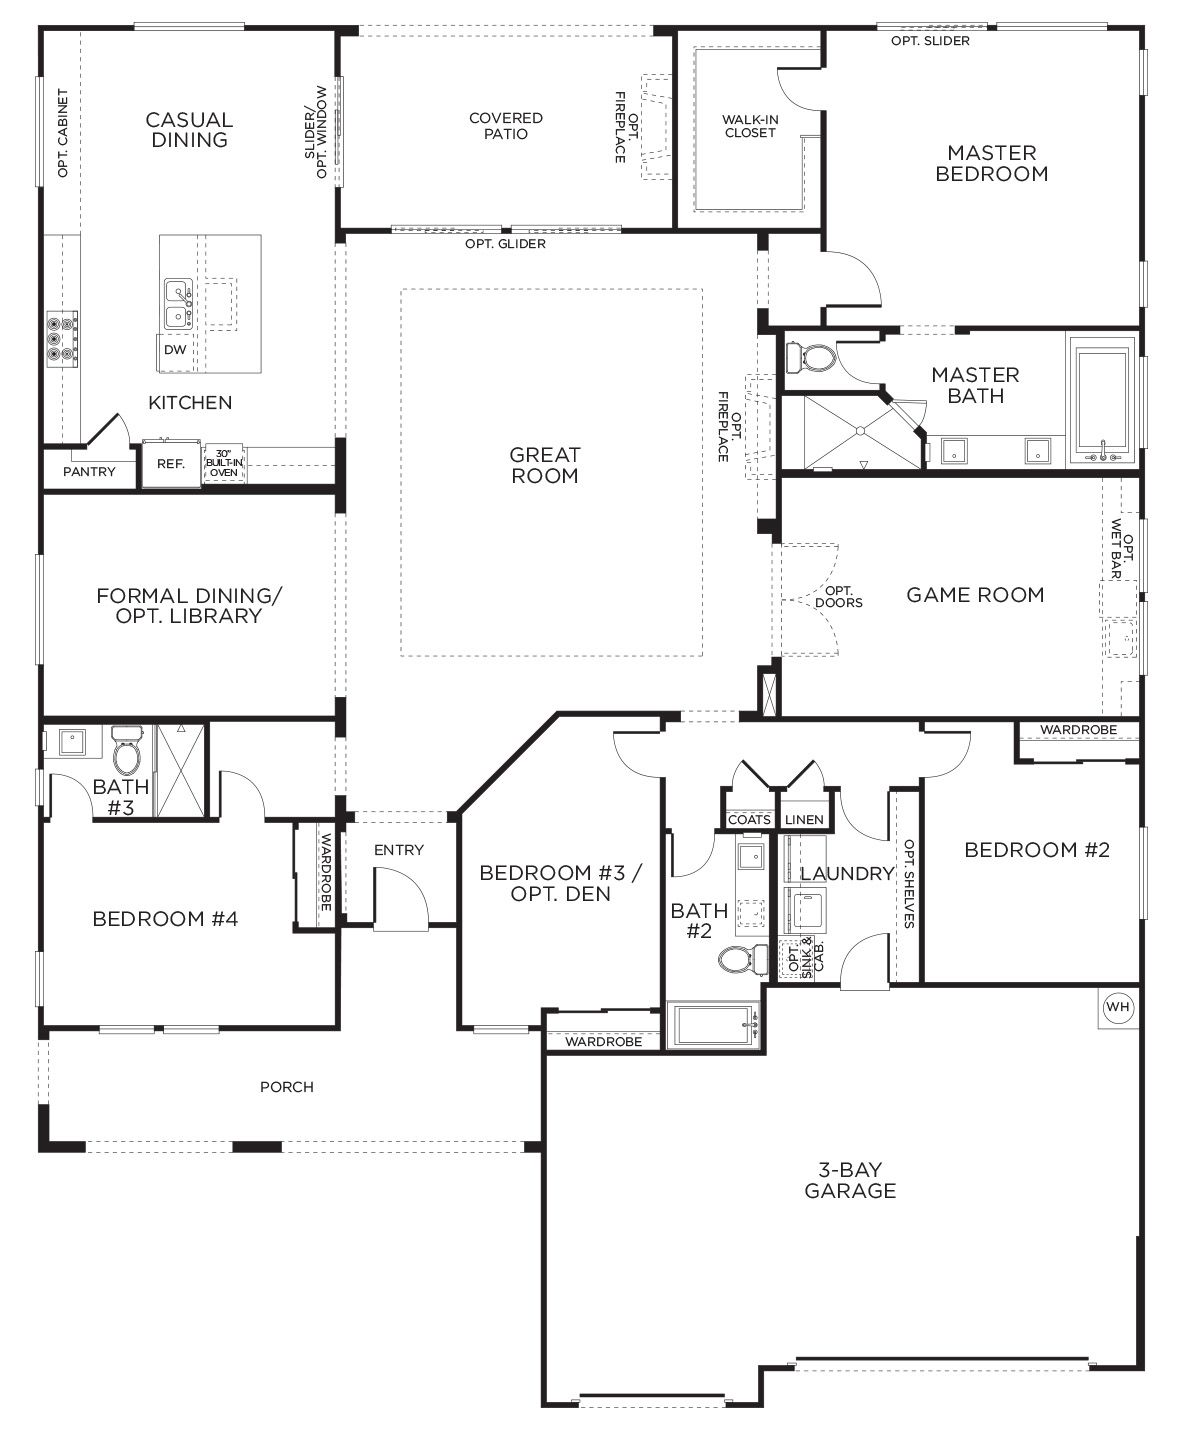 Admirable Single Story Luxury House Plans Photo Gallery Home Design Ideas Largest Home Design Picture Inspirations Pitcheantrous